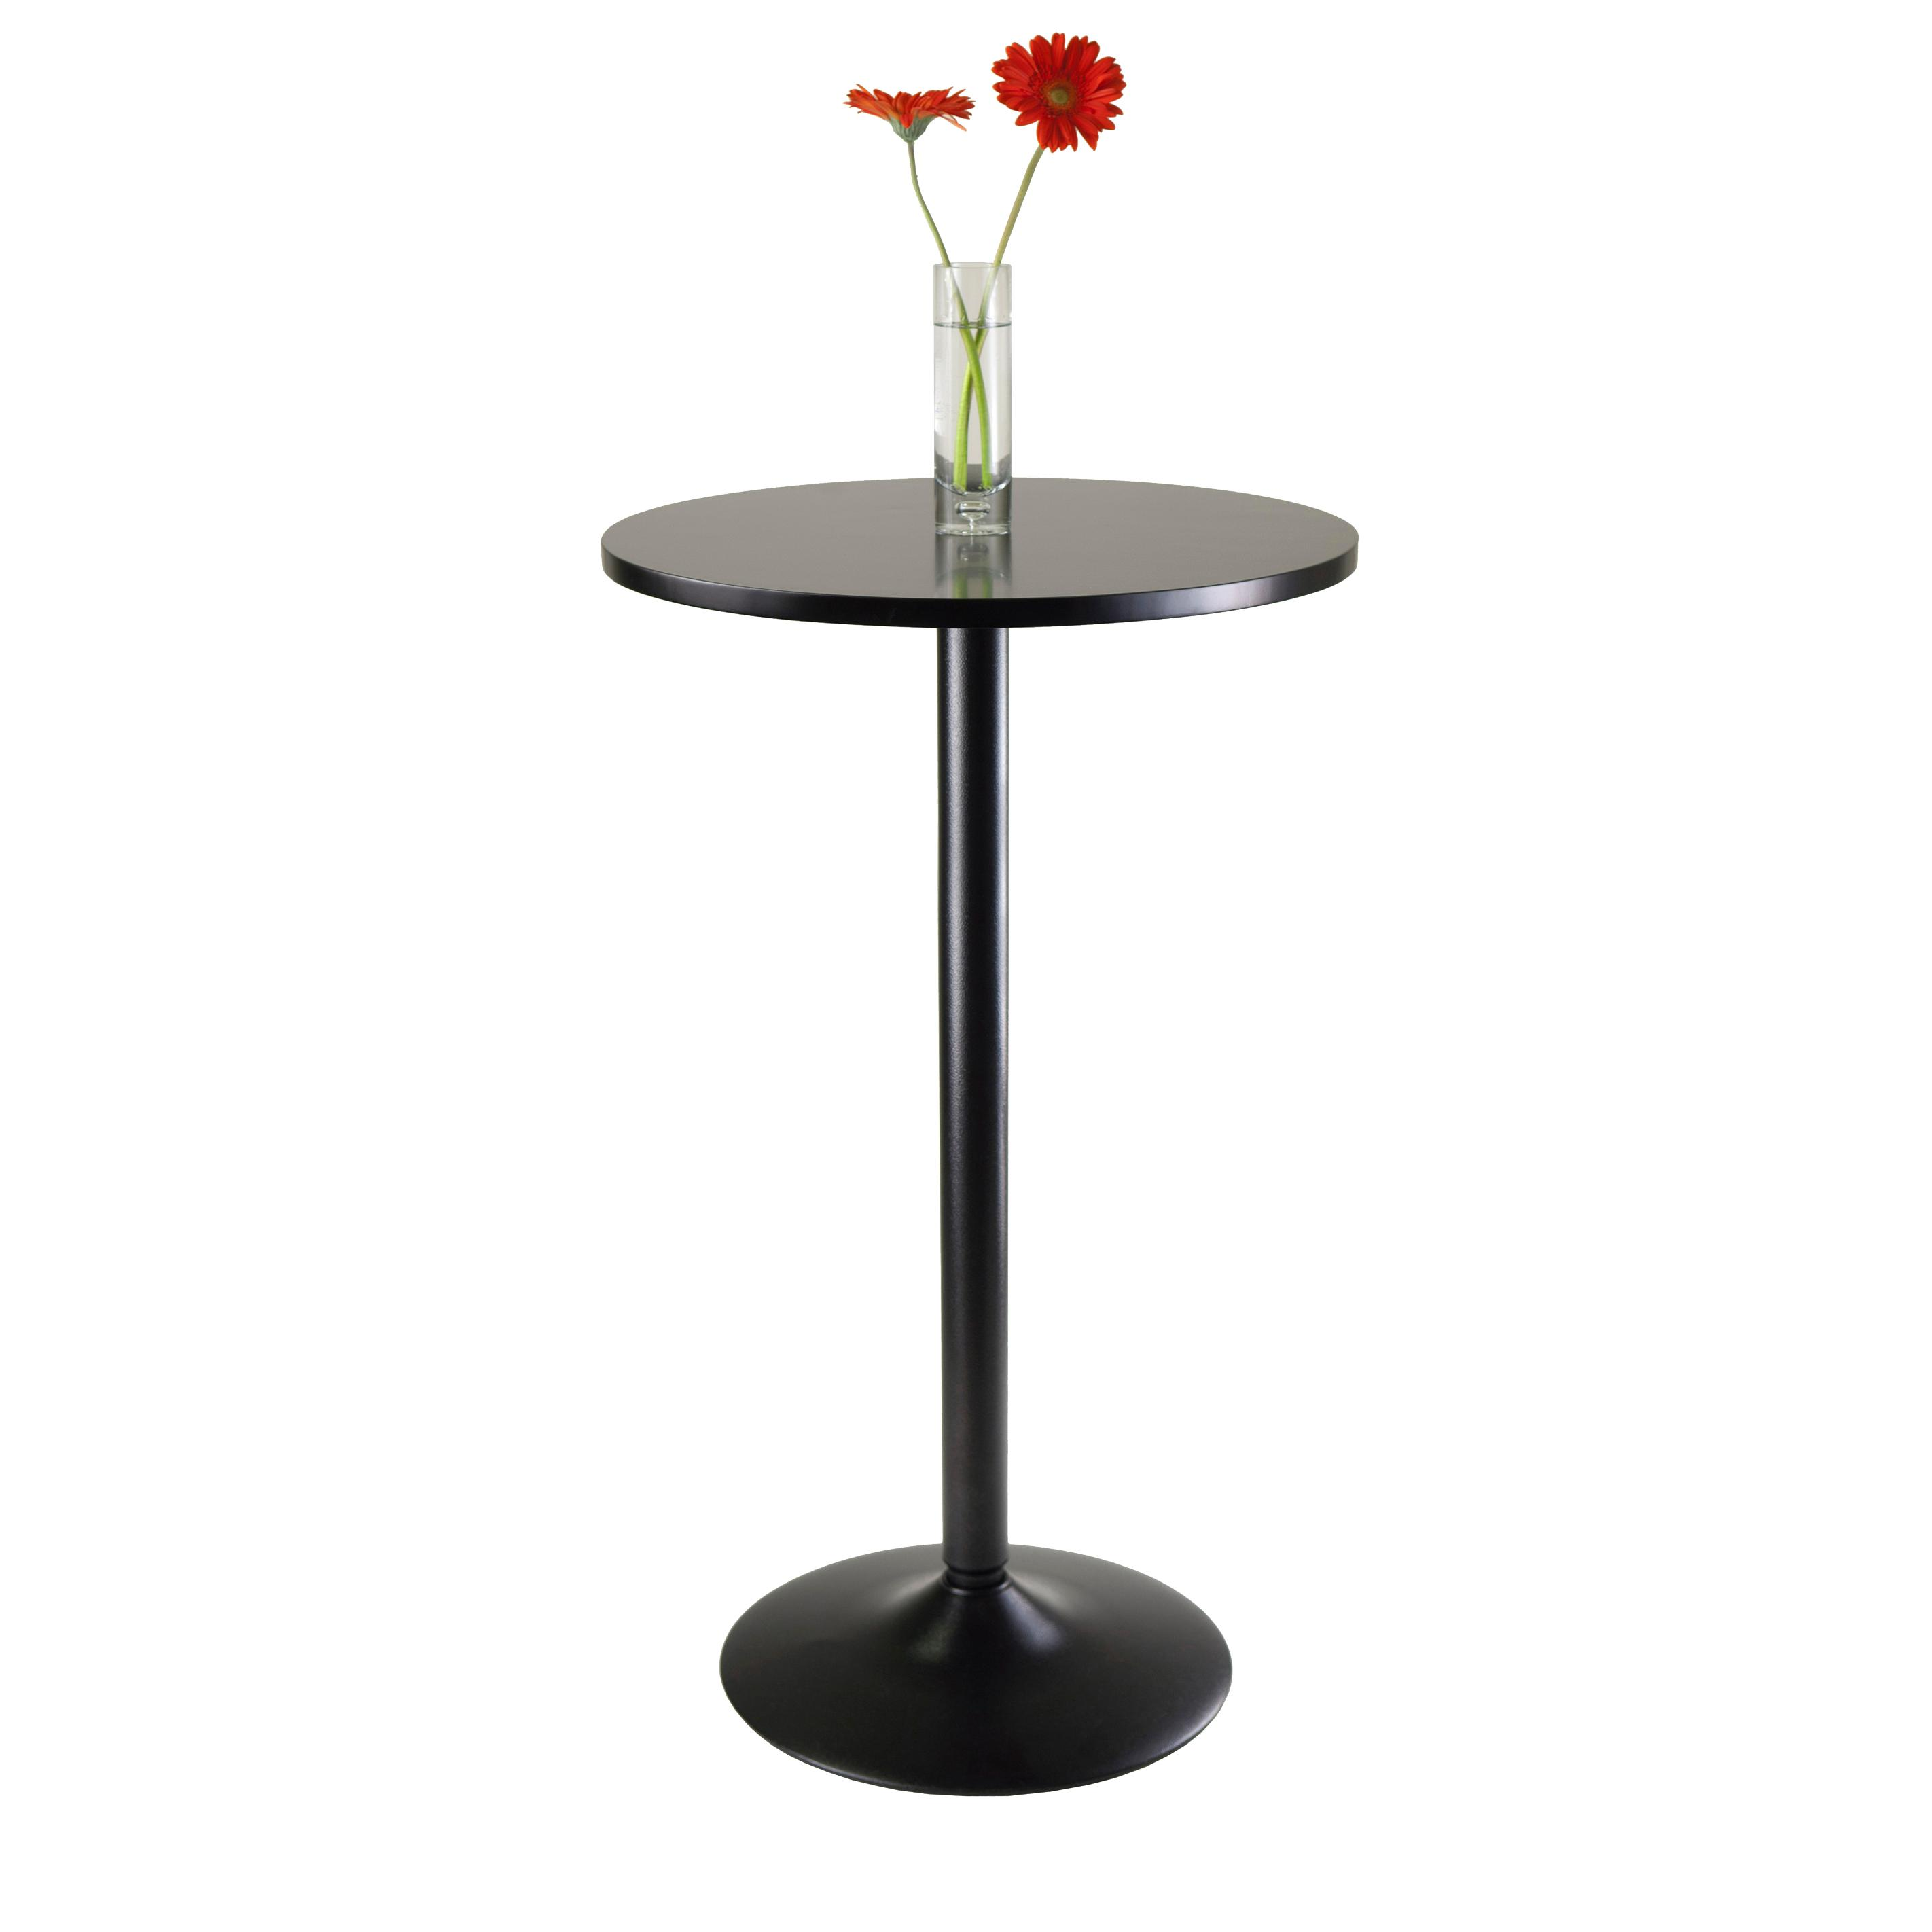 rectangle pedestal brings tables table base design top dining looks transparent black modern furniture enchanting with wood glass interior for of wooden carving your